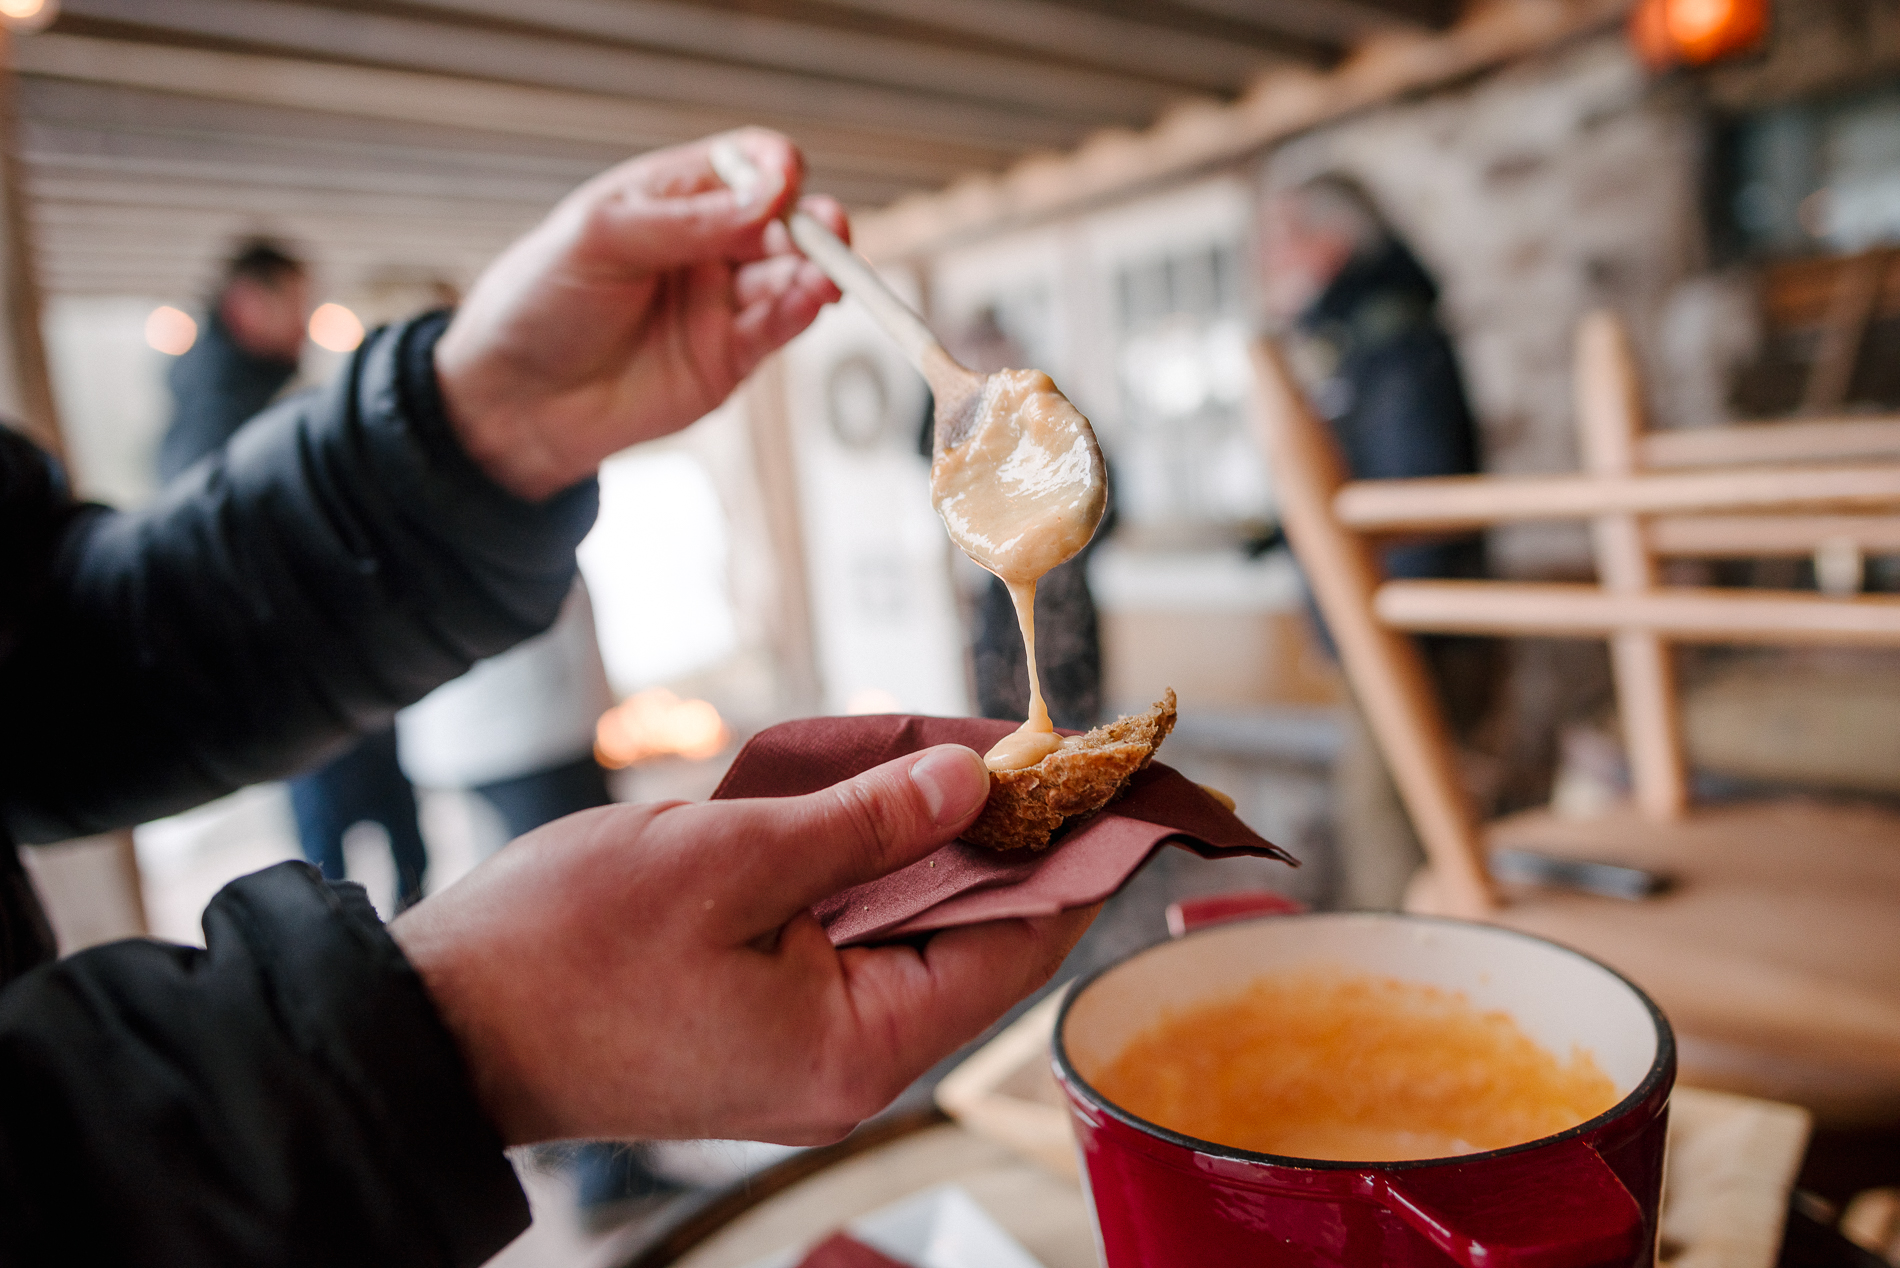 Ontario Wedding Detail Pic from Rockport Barn | One of the couple's sons takes a sampling of the fondue